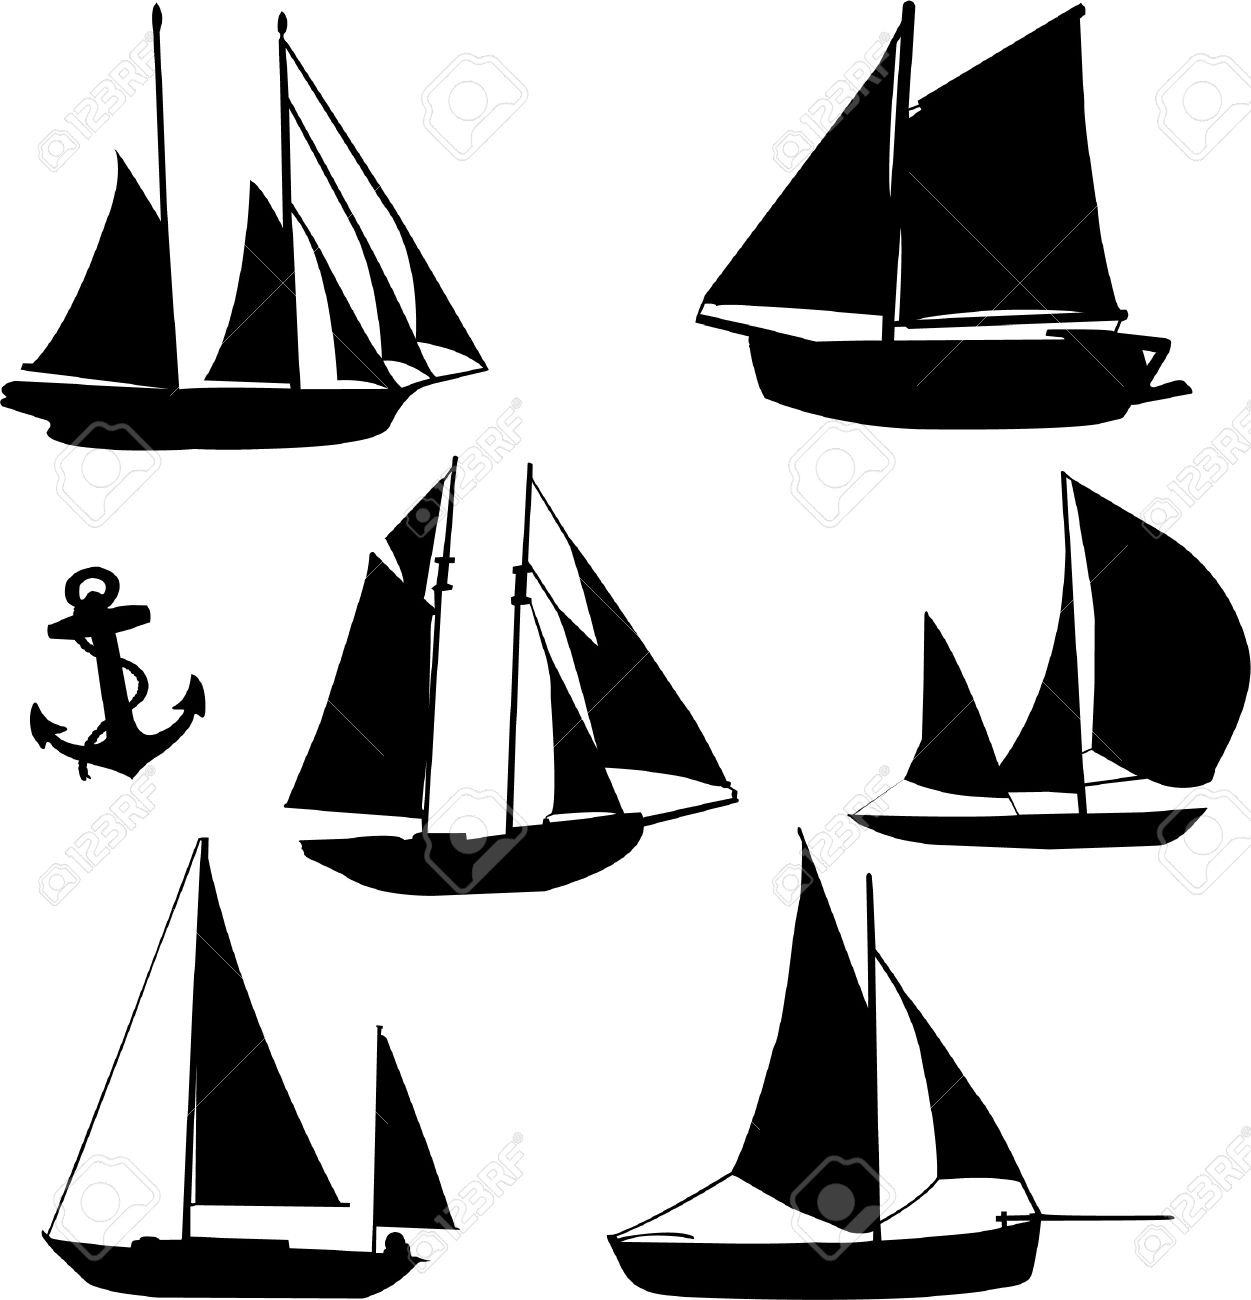 silhouette of sailboats royalty free cliparts, vectors, and stock